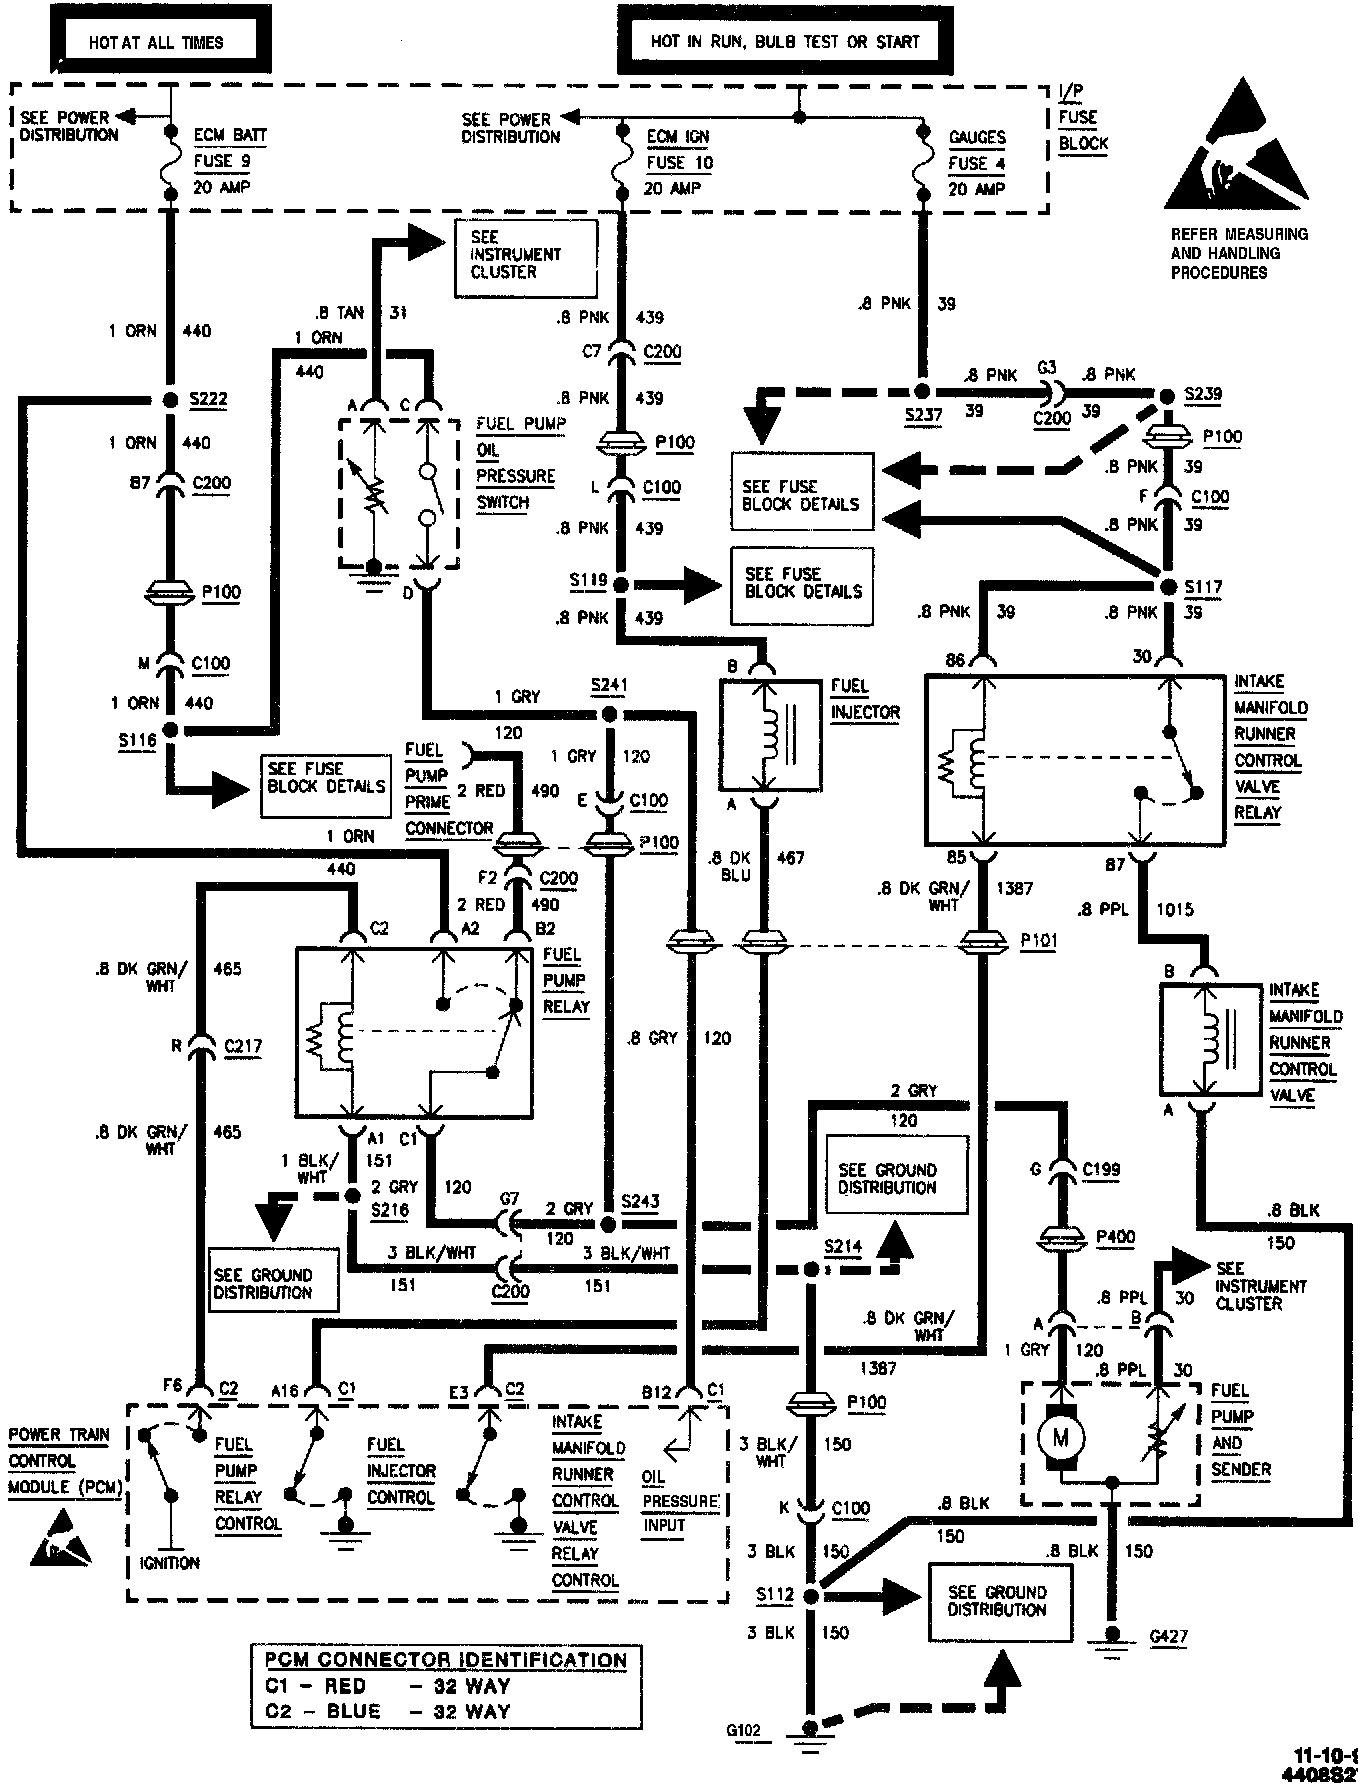 1994 S10 Ac Wiring Diagram 1997 Ford Ranger: 97 Cadillac Deville Ac Wiring Diagram At Chusao.net